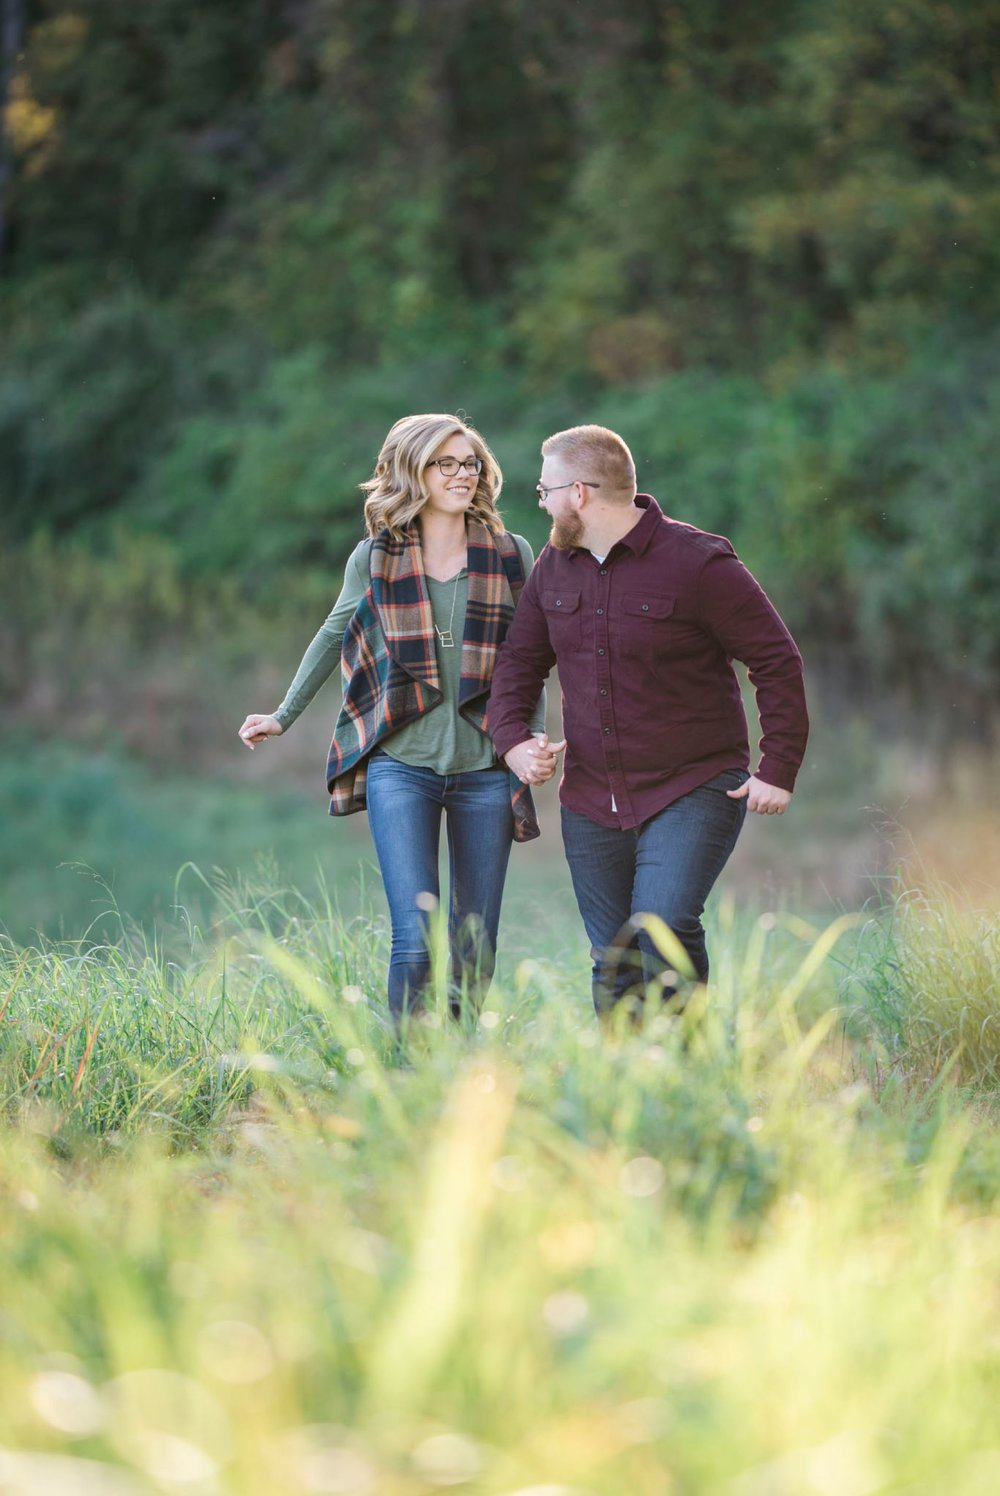 engagementsession_vaweddingphotographer 8.jpg